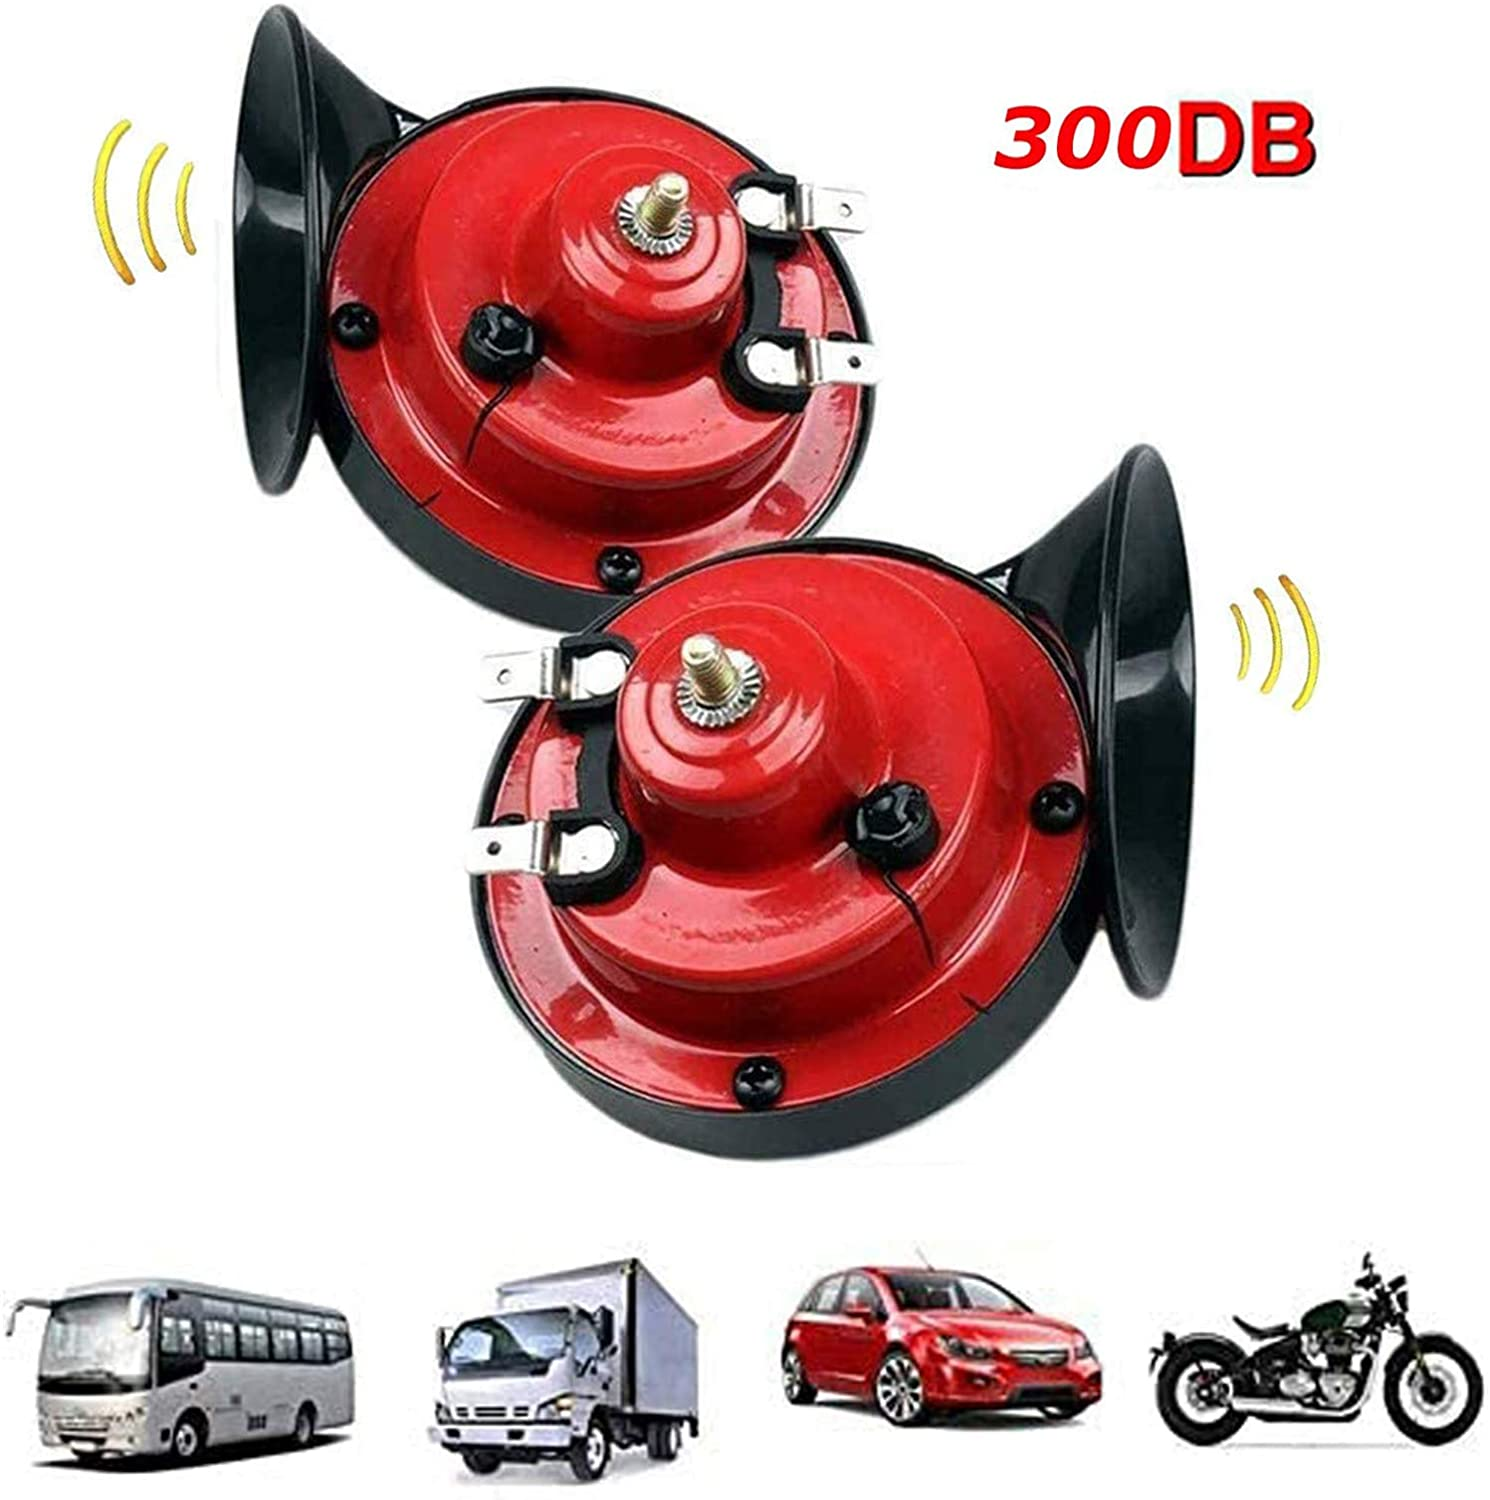 Wiixiong Air Electric Snail Horn for Car Motorcycle Truck Boat Train 300dB Loud 12v Double Tone Universal Waterproof Easy to Install